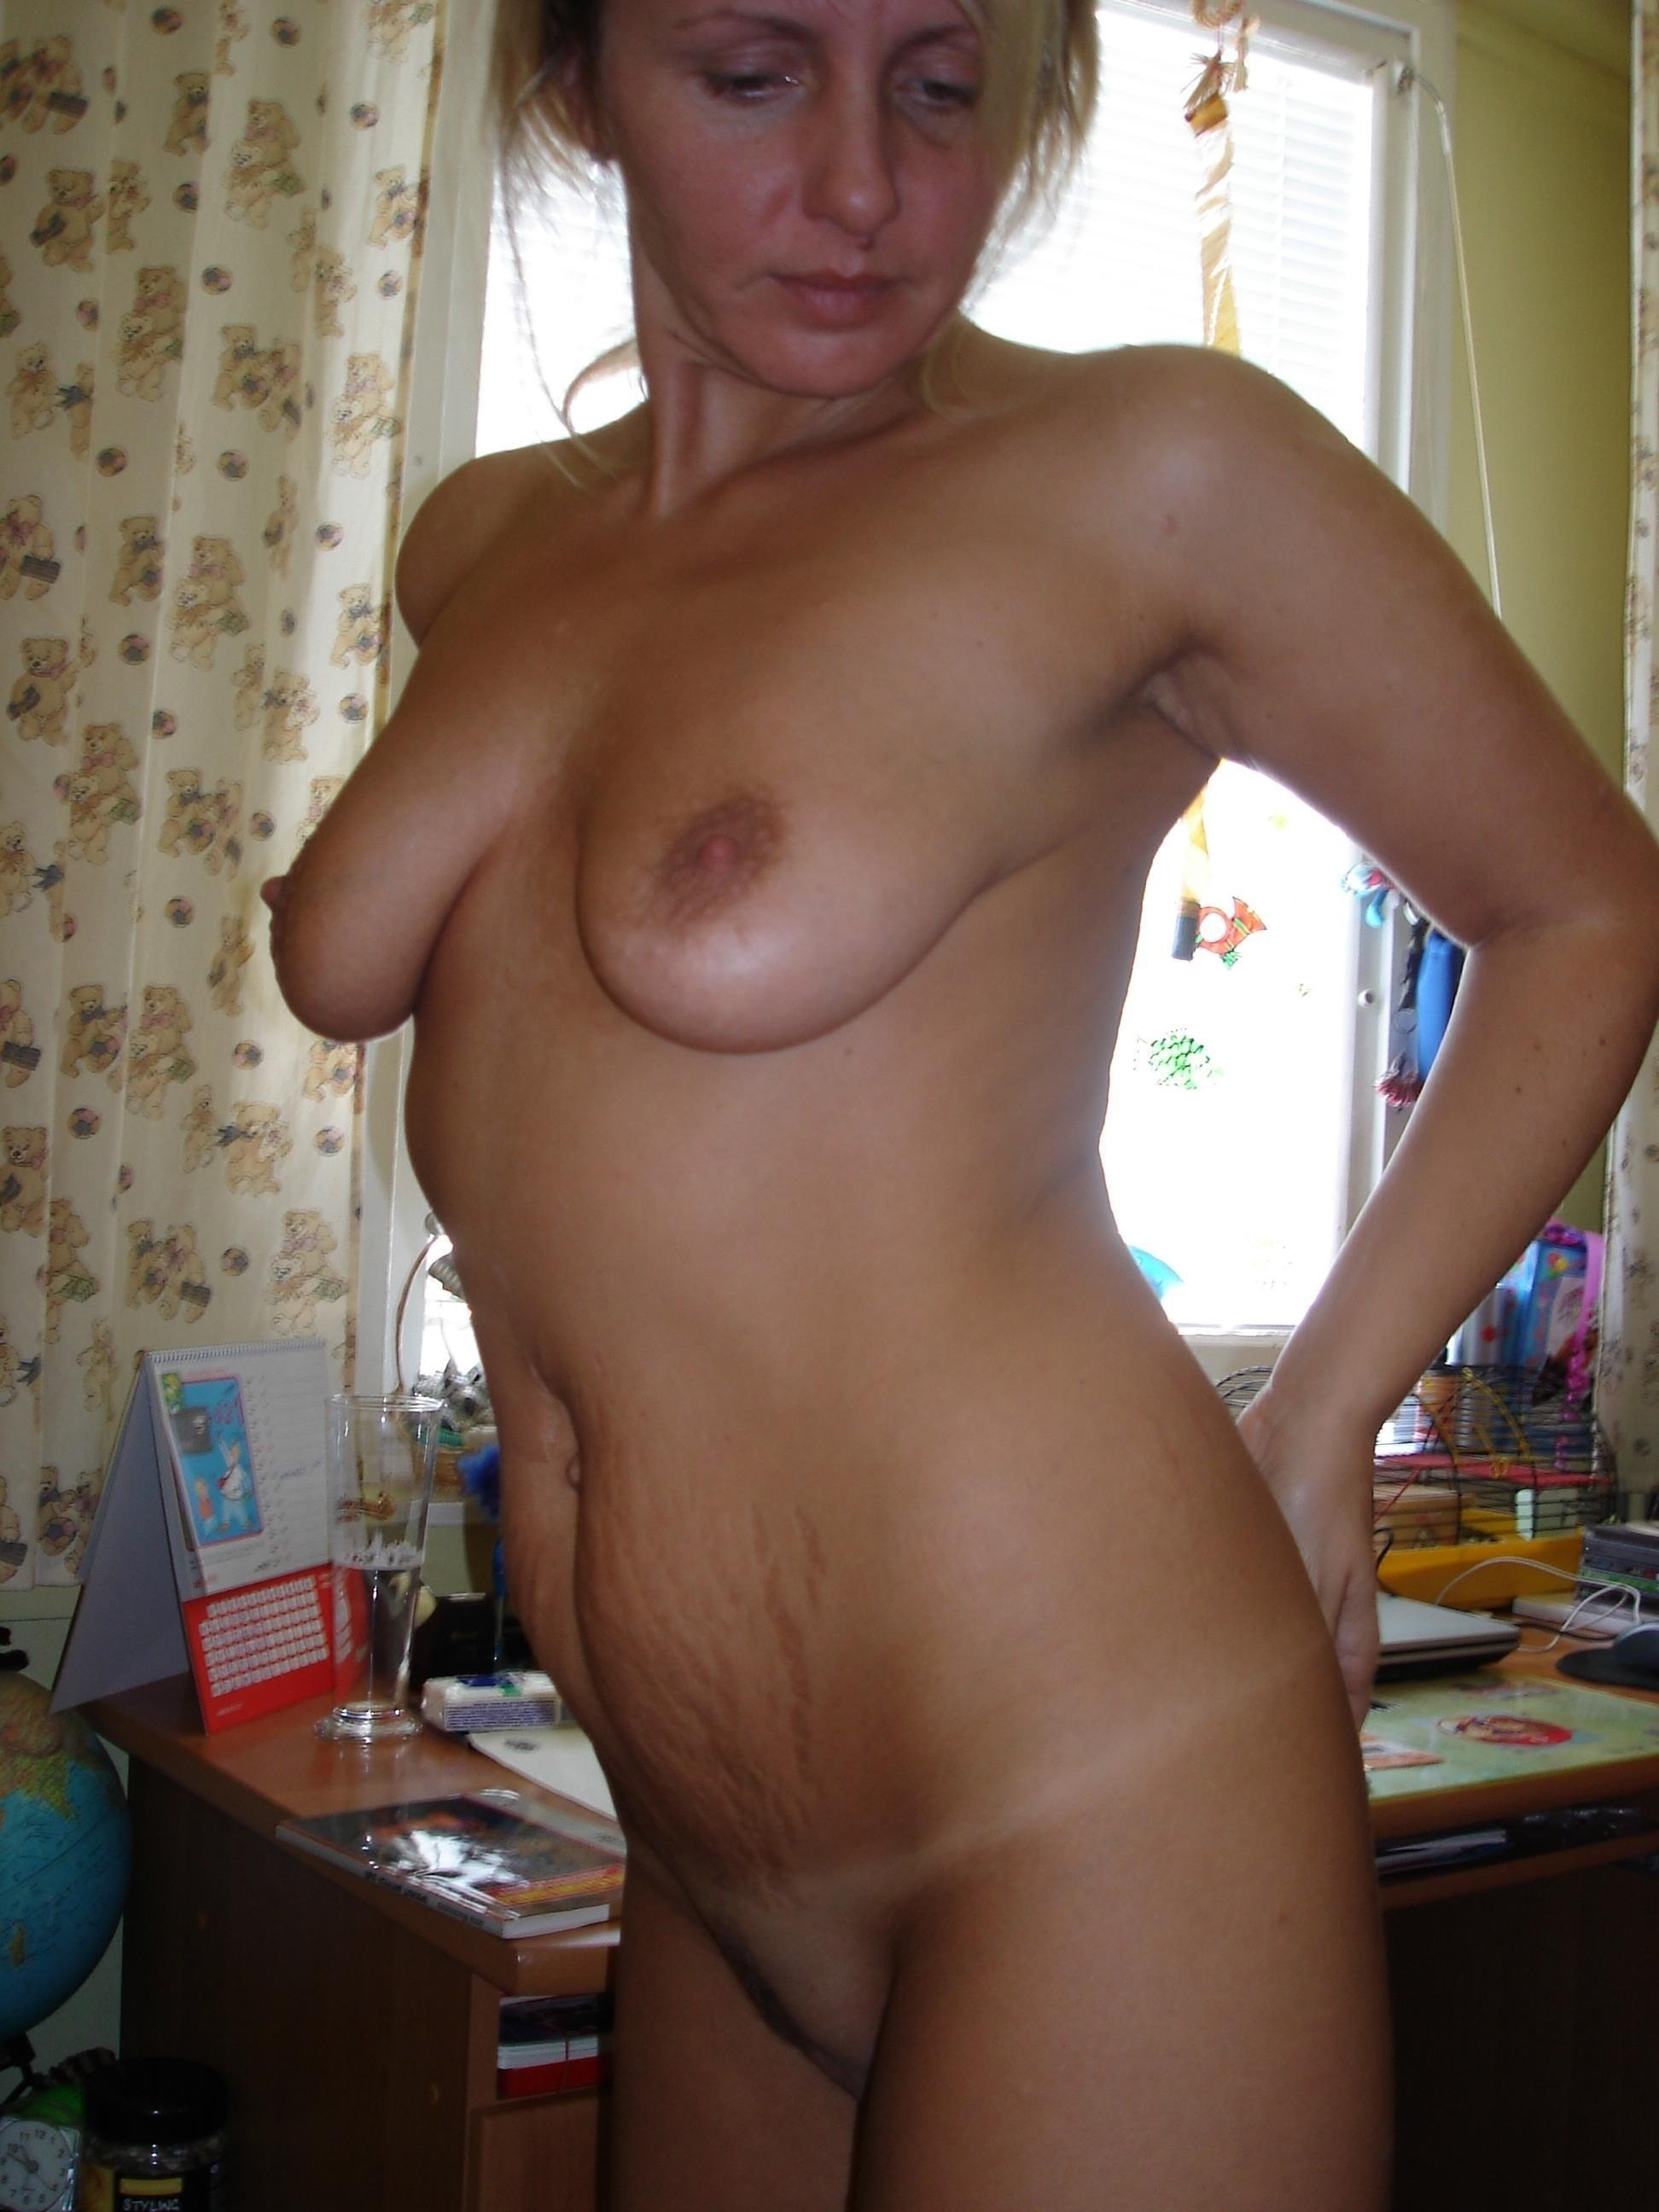 wife 8 inch dildo there